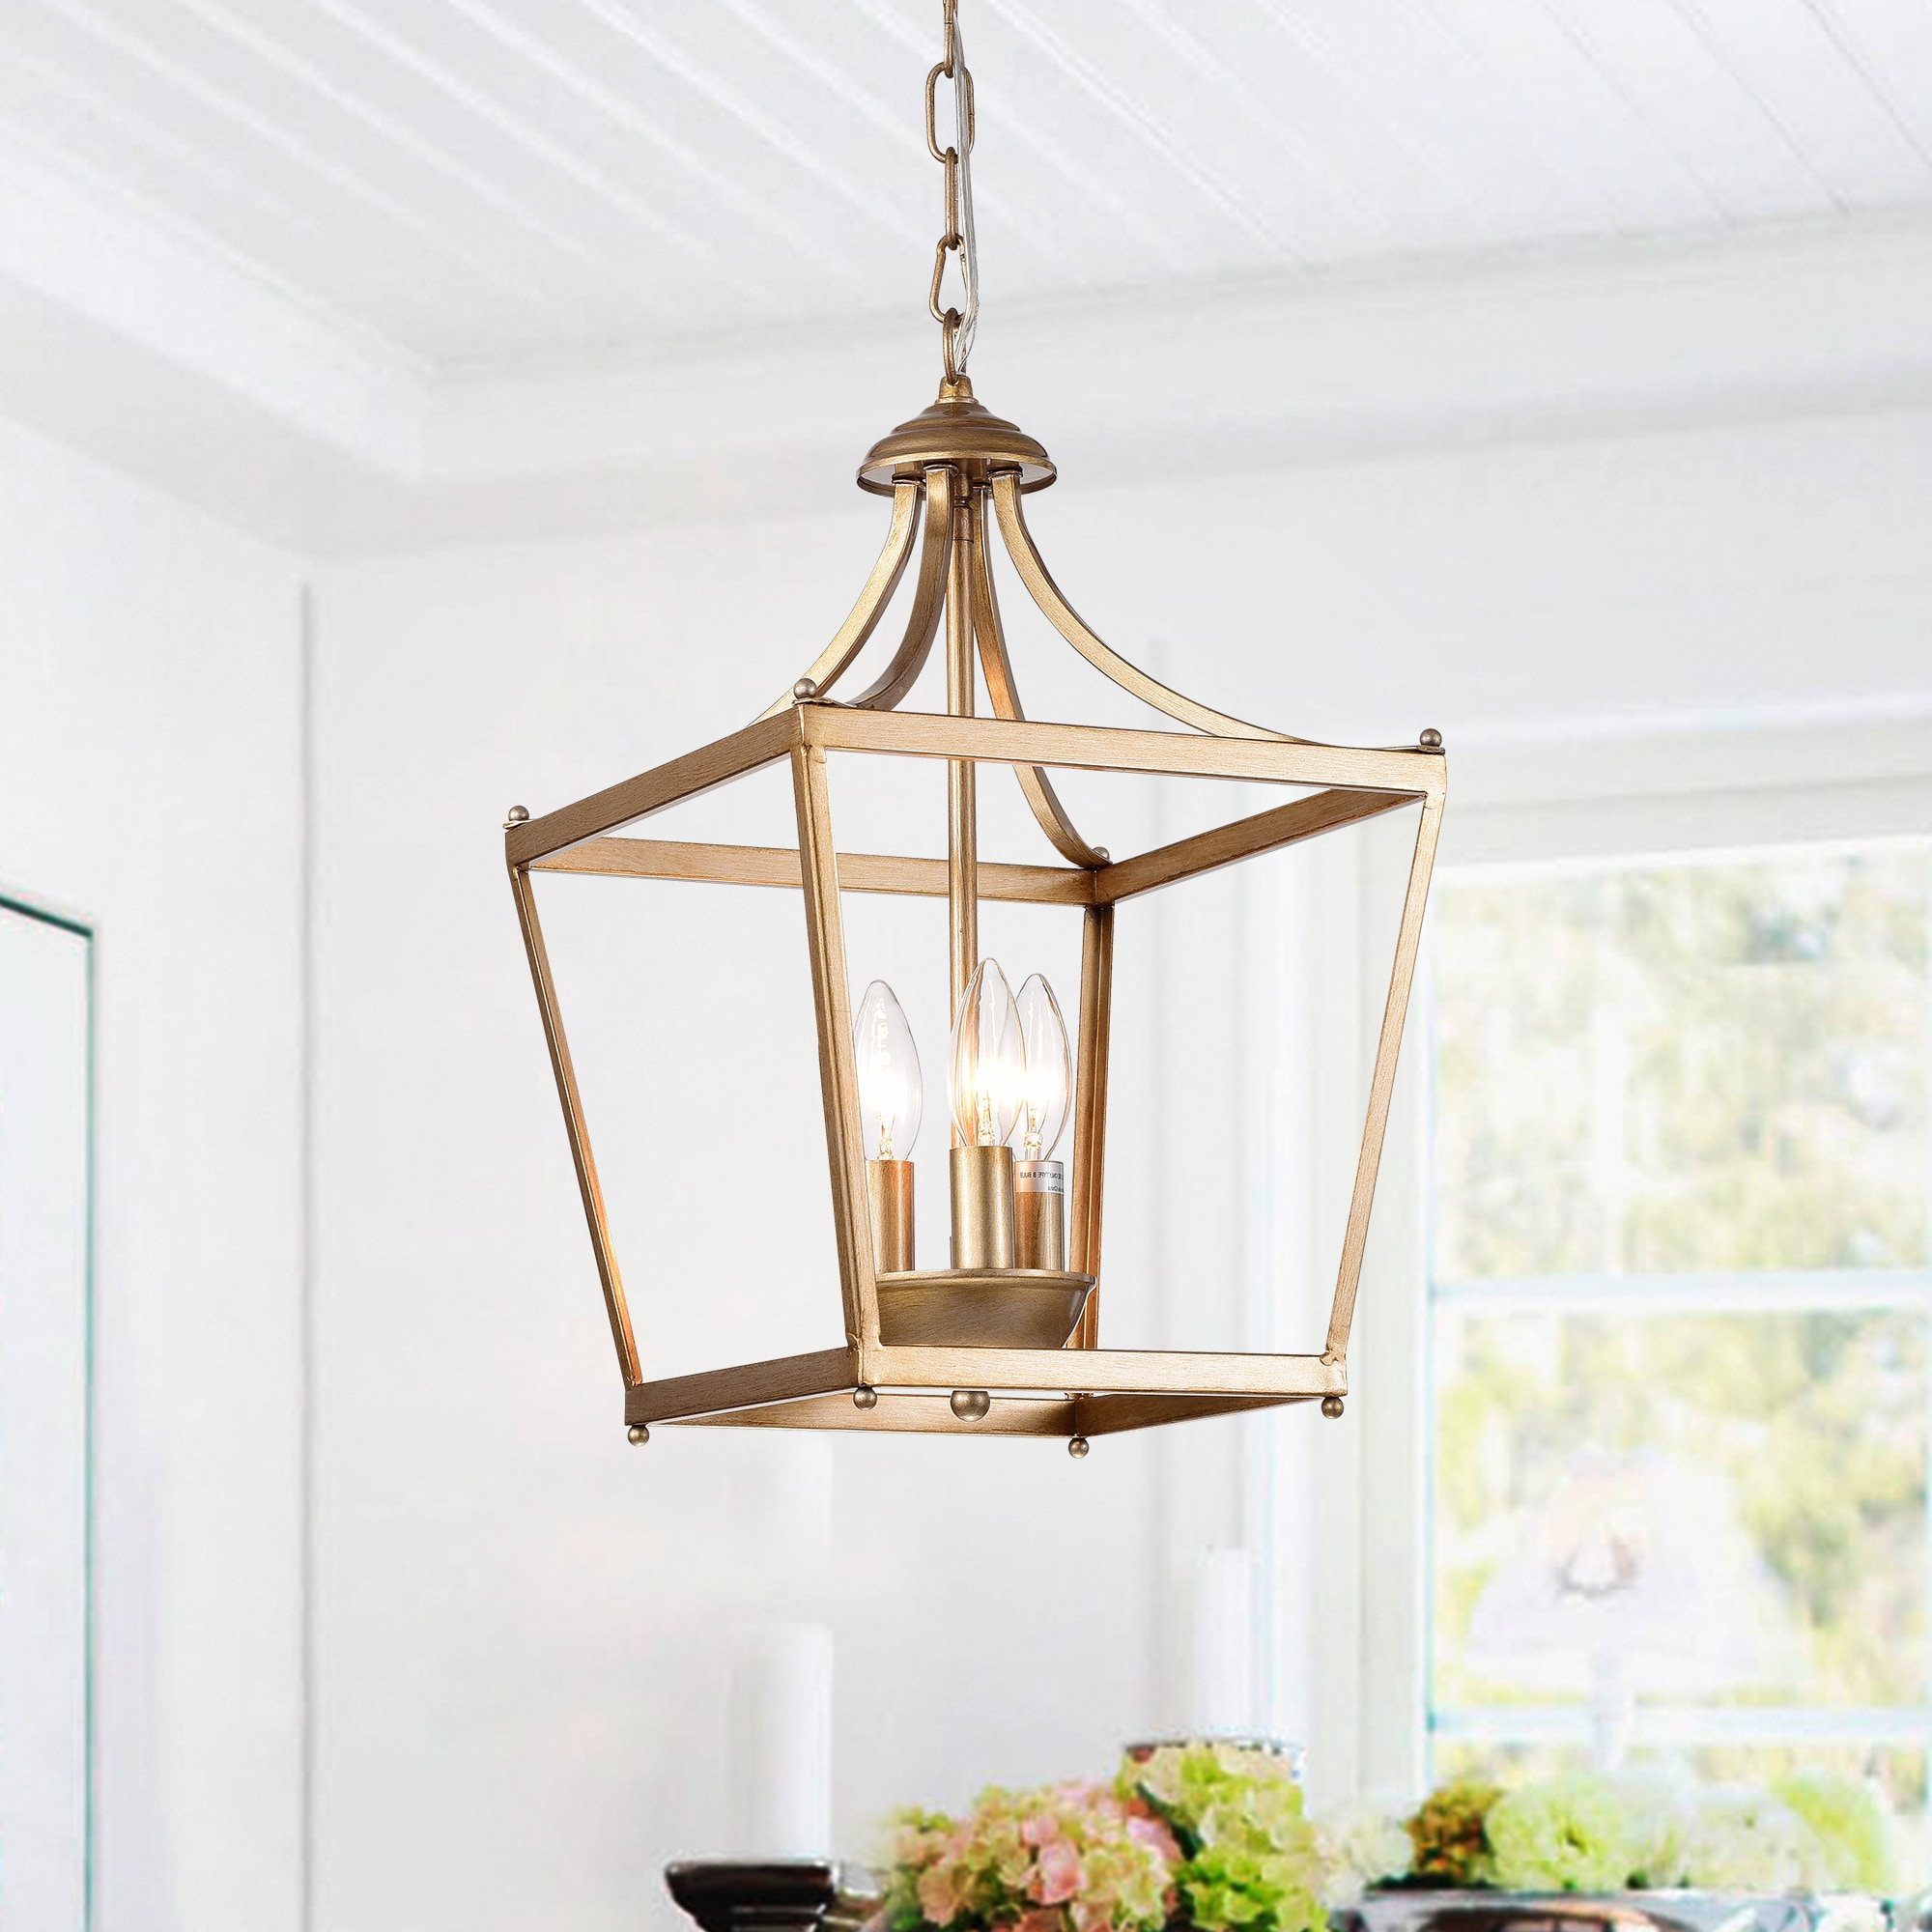 2020 Warehouse Of Tiffany Sunsus Gold 3 Light Lantern Pendant (11 Intended For Gabriella 3 Light Lantern Chandeliers (Gallery 5 of 20)